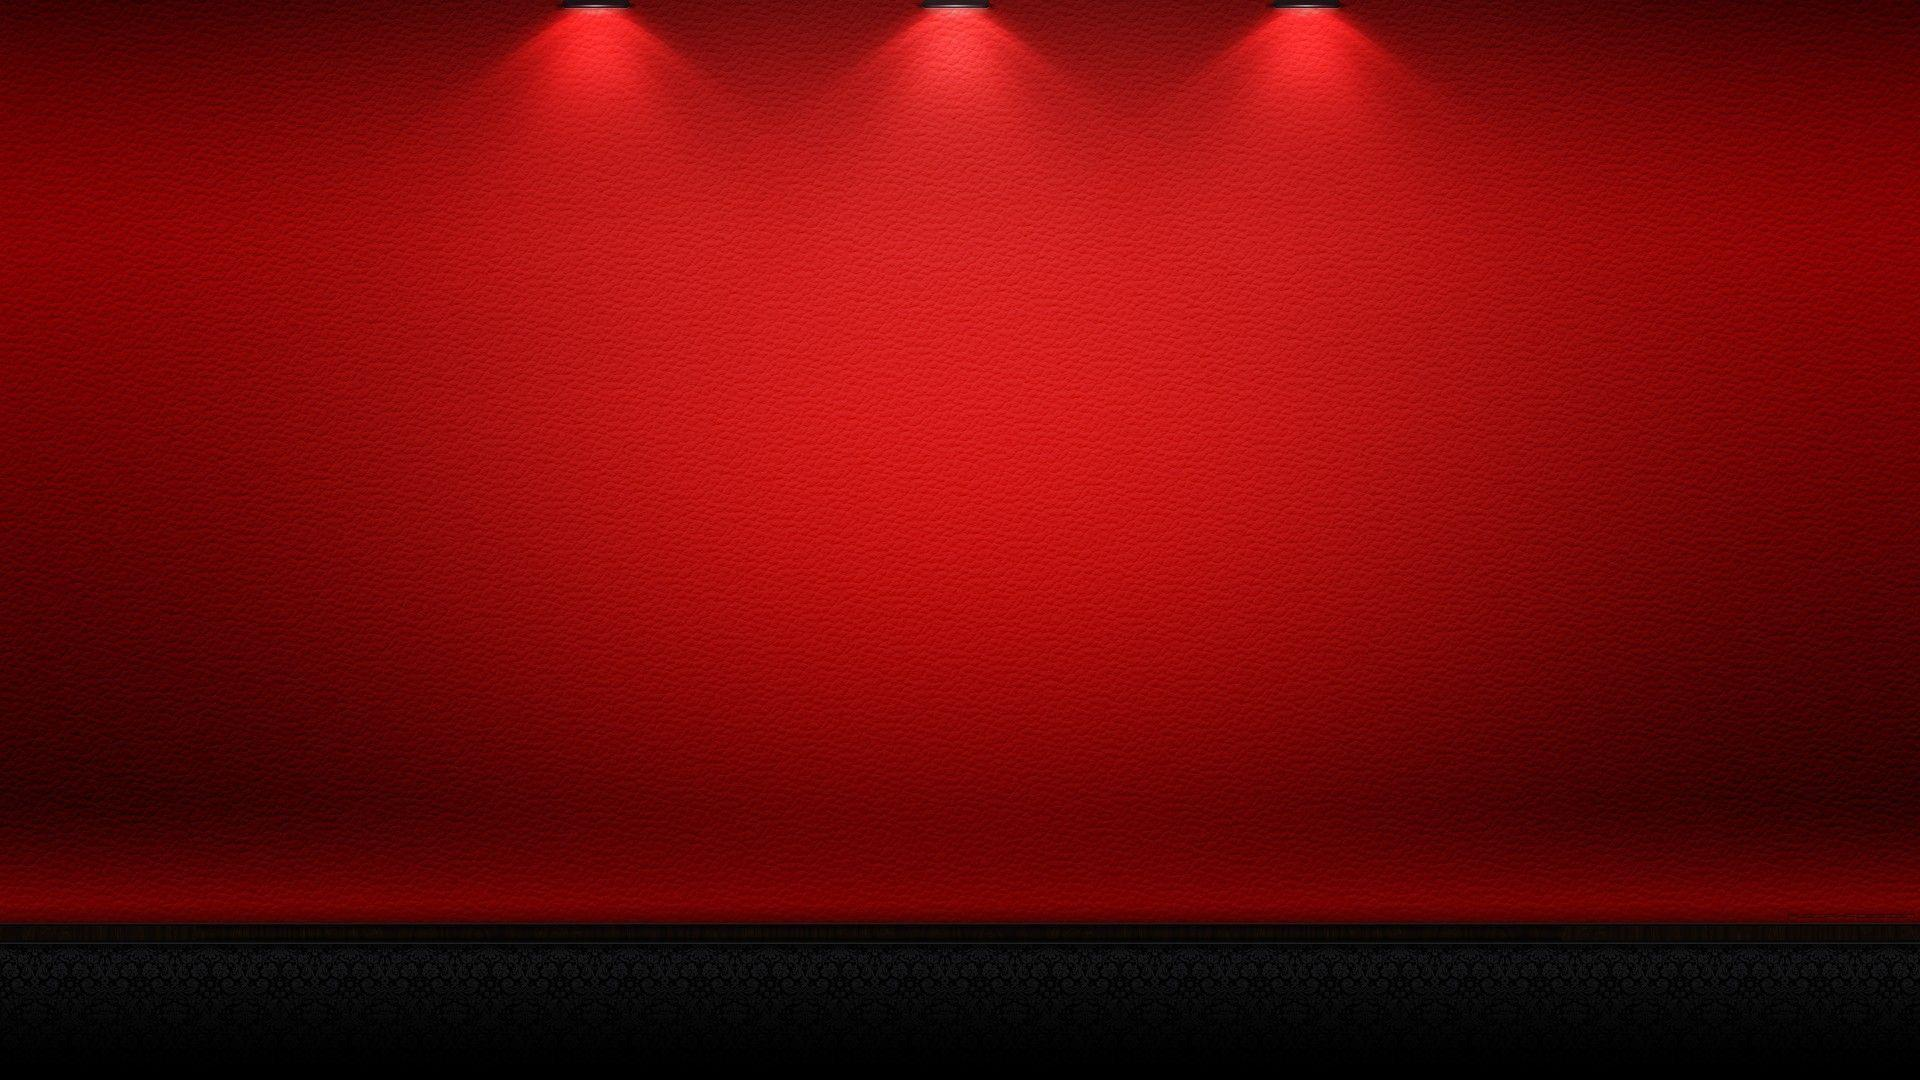 red and black love wallpapers - photo #37